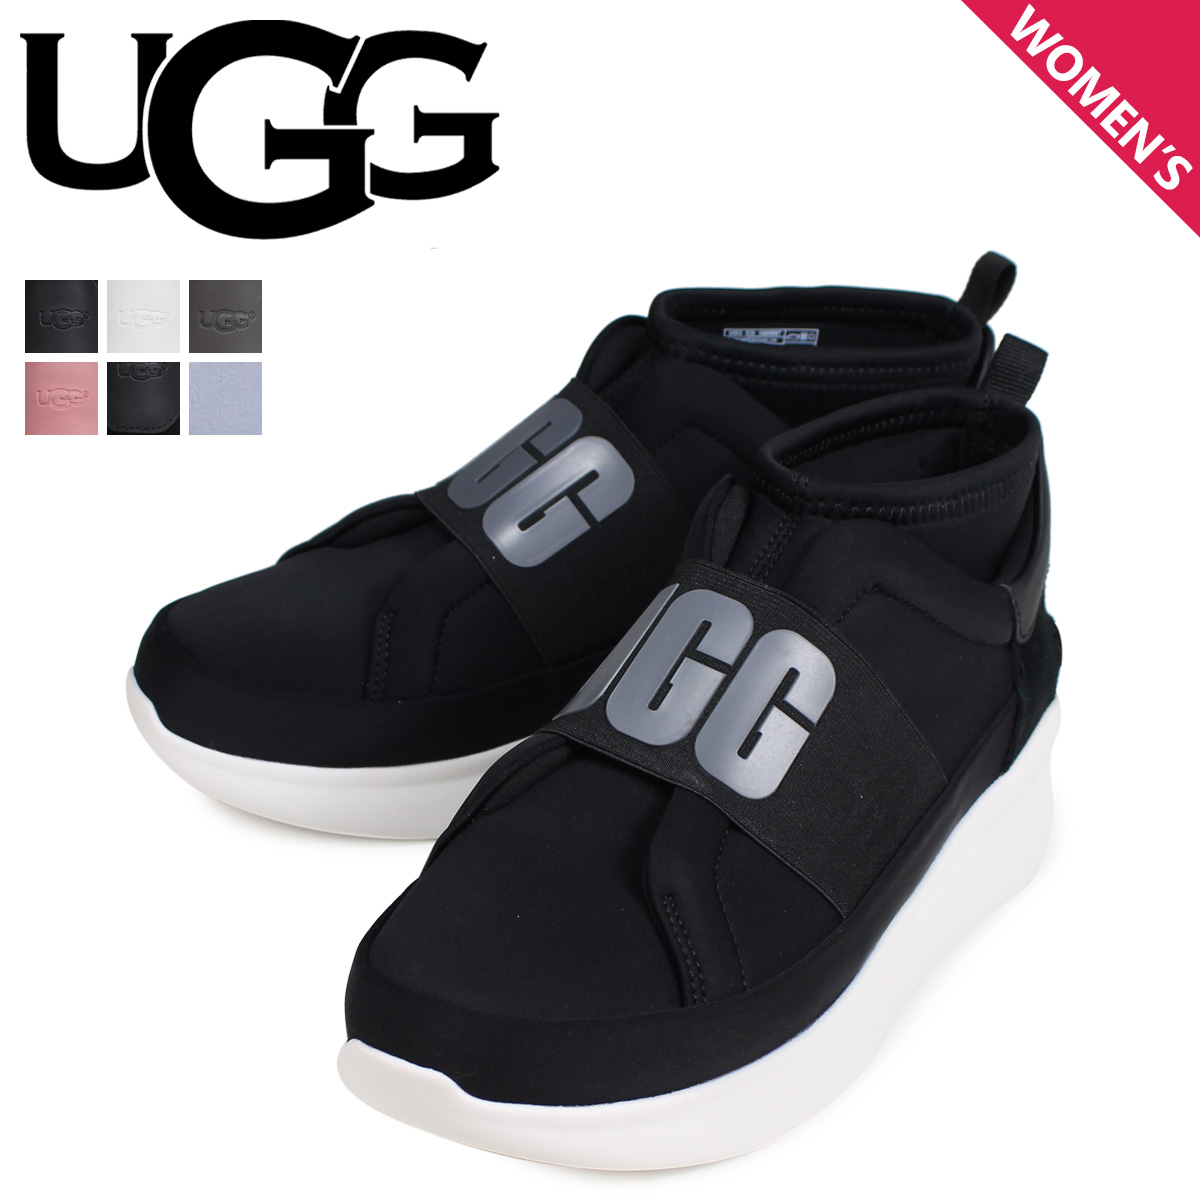 5bfaea37683 アグ UGG sneakers slip-ons current style Lady's WOMENS NEUTRA SNEAKER black  off-white gray pink blue black 1095097 [the 7/12 additional arrival]